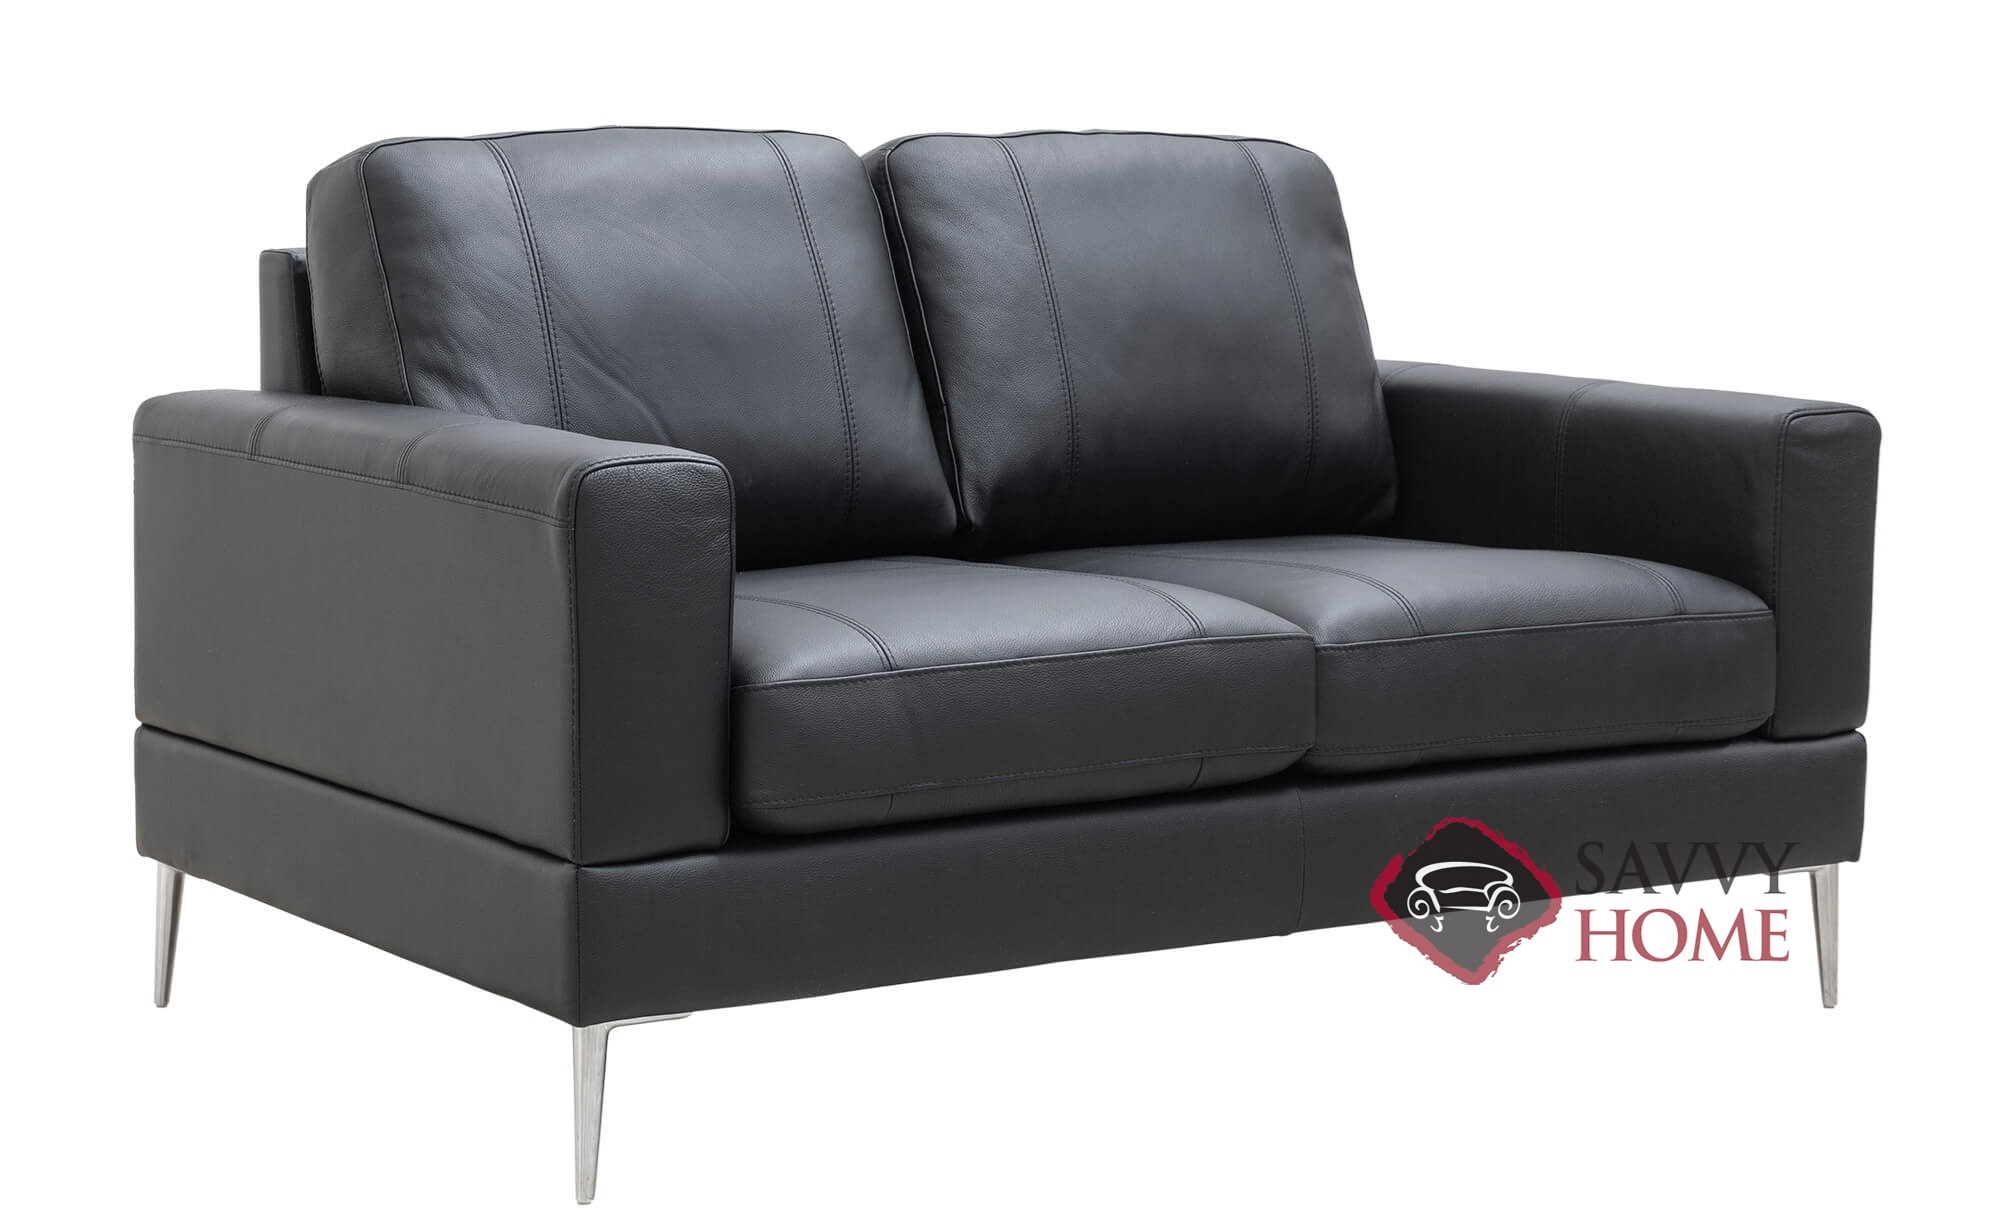 Terrific Capri Leather Loveseat By Luonto Gmtry Best Dining Table And Chair Ideas Images Gmtryco